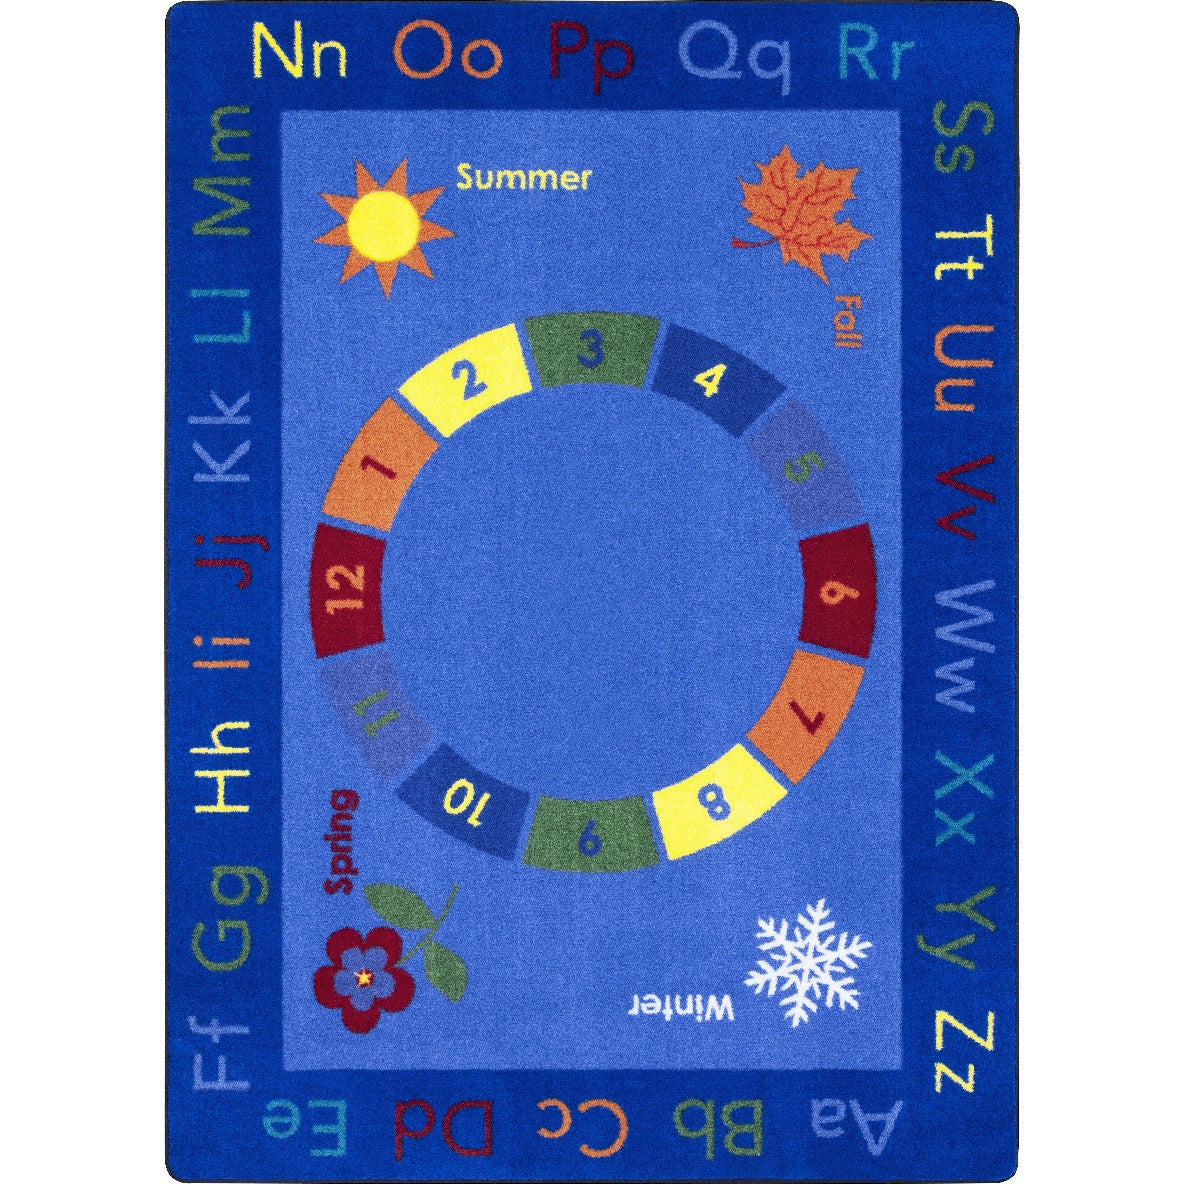 Learn Through the Seasons Area Rug - Flooring Mats and Turf